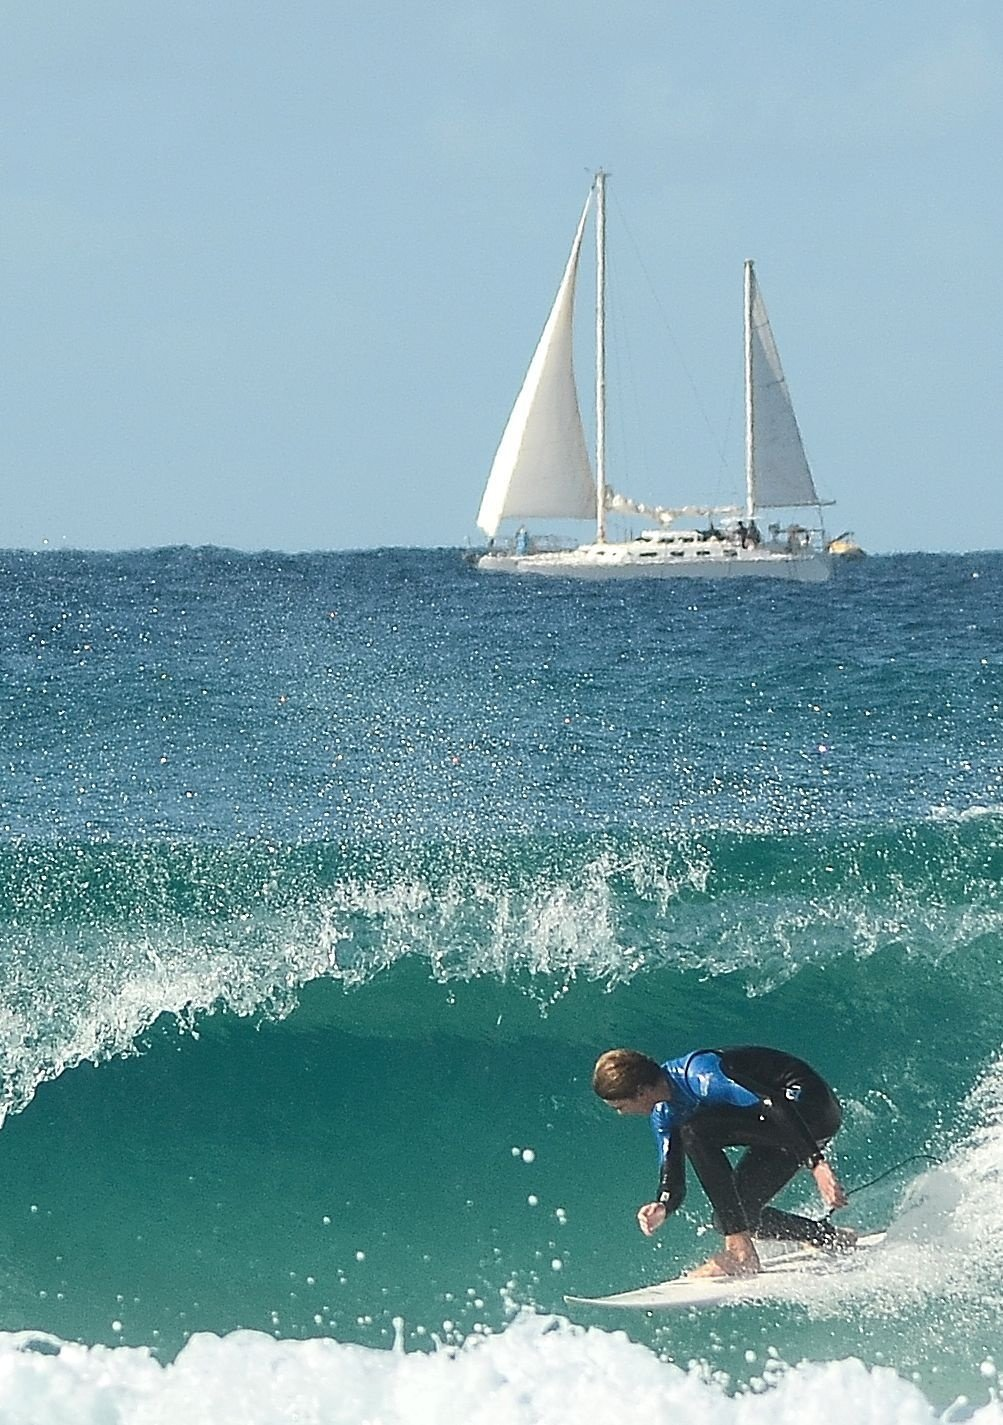 Bertie's photo of Duranbah (D-Bah)